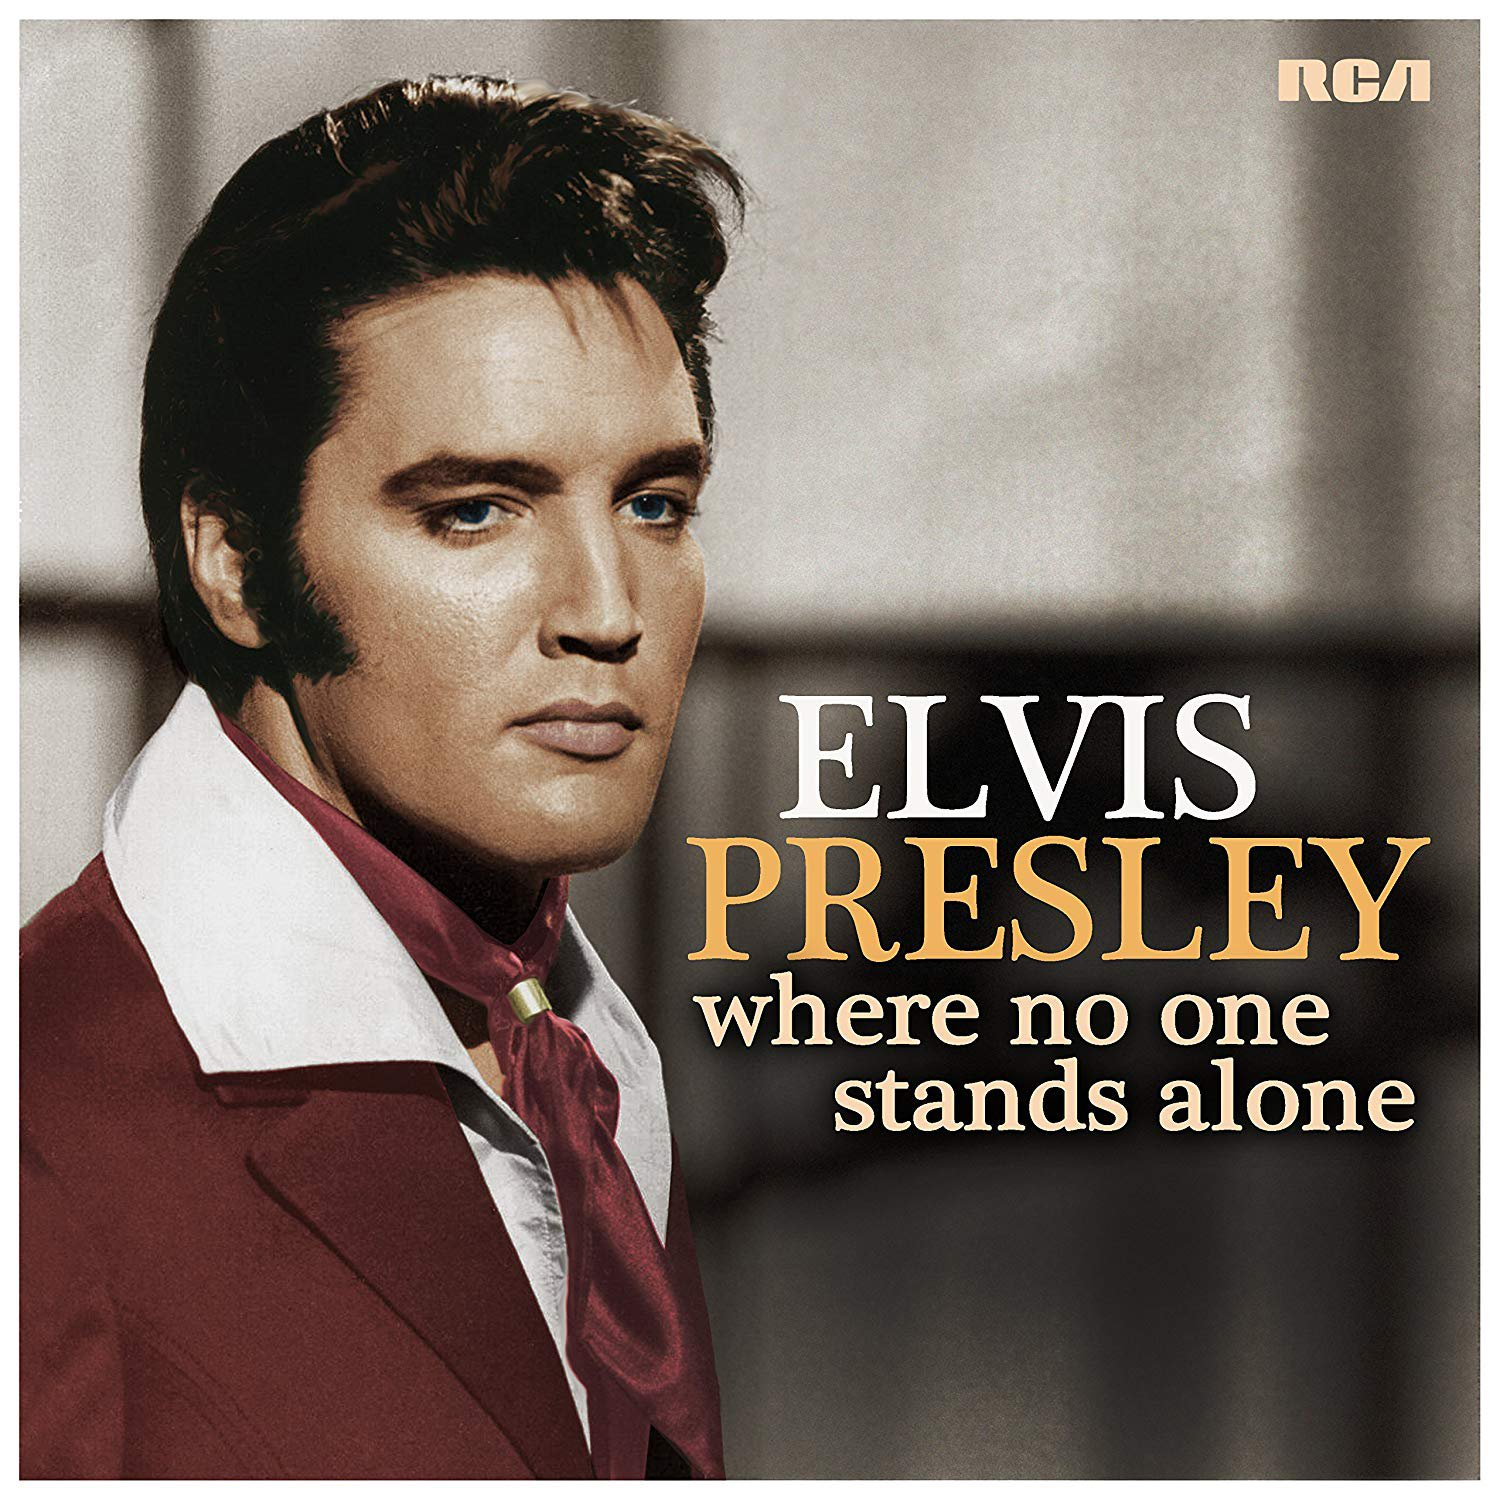 Vinilo : Elvis Presley - Where No One Stands Alone (140 Gram Vinyl, Download Insert)